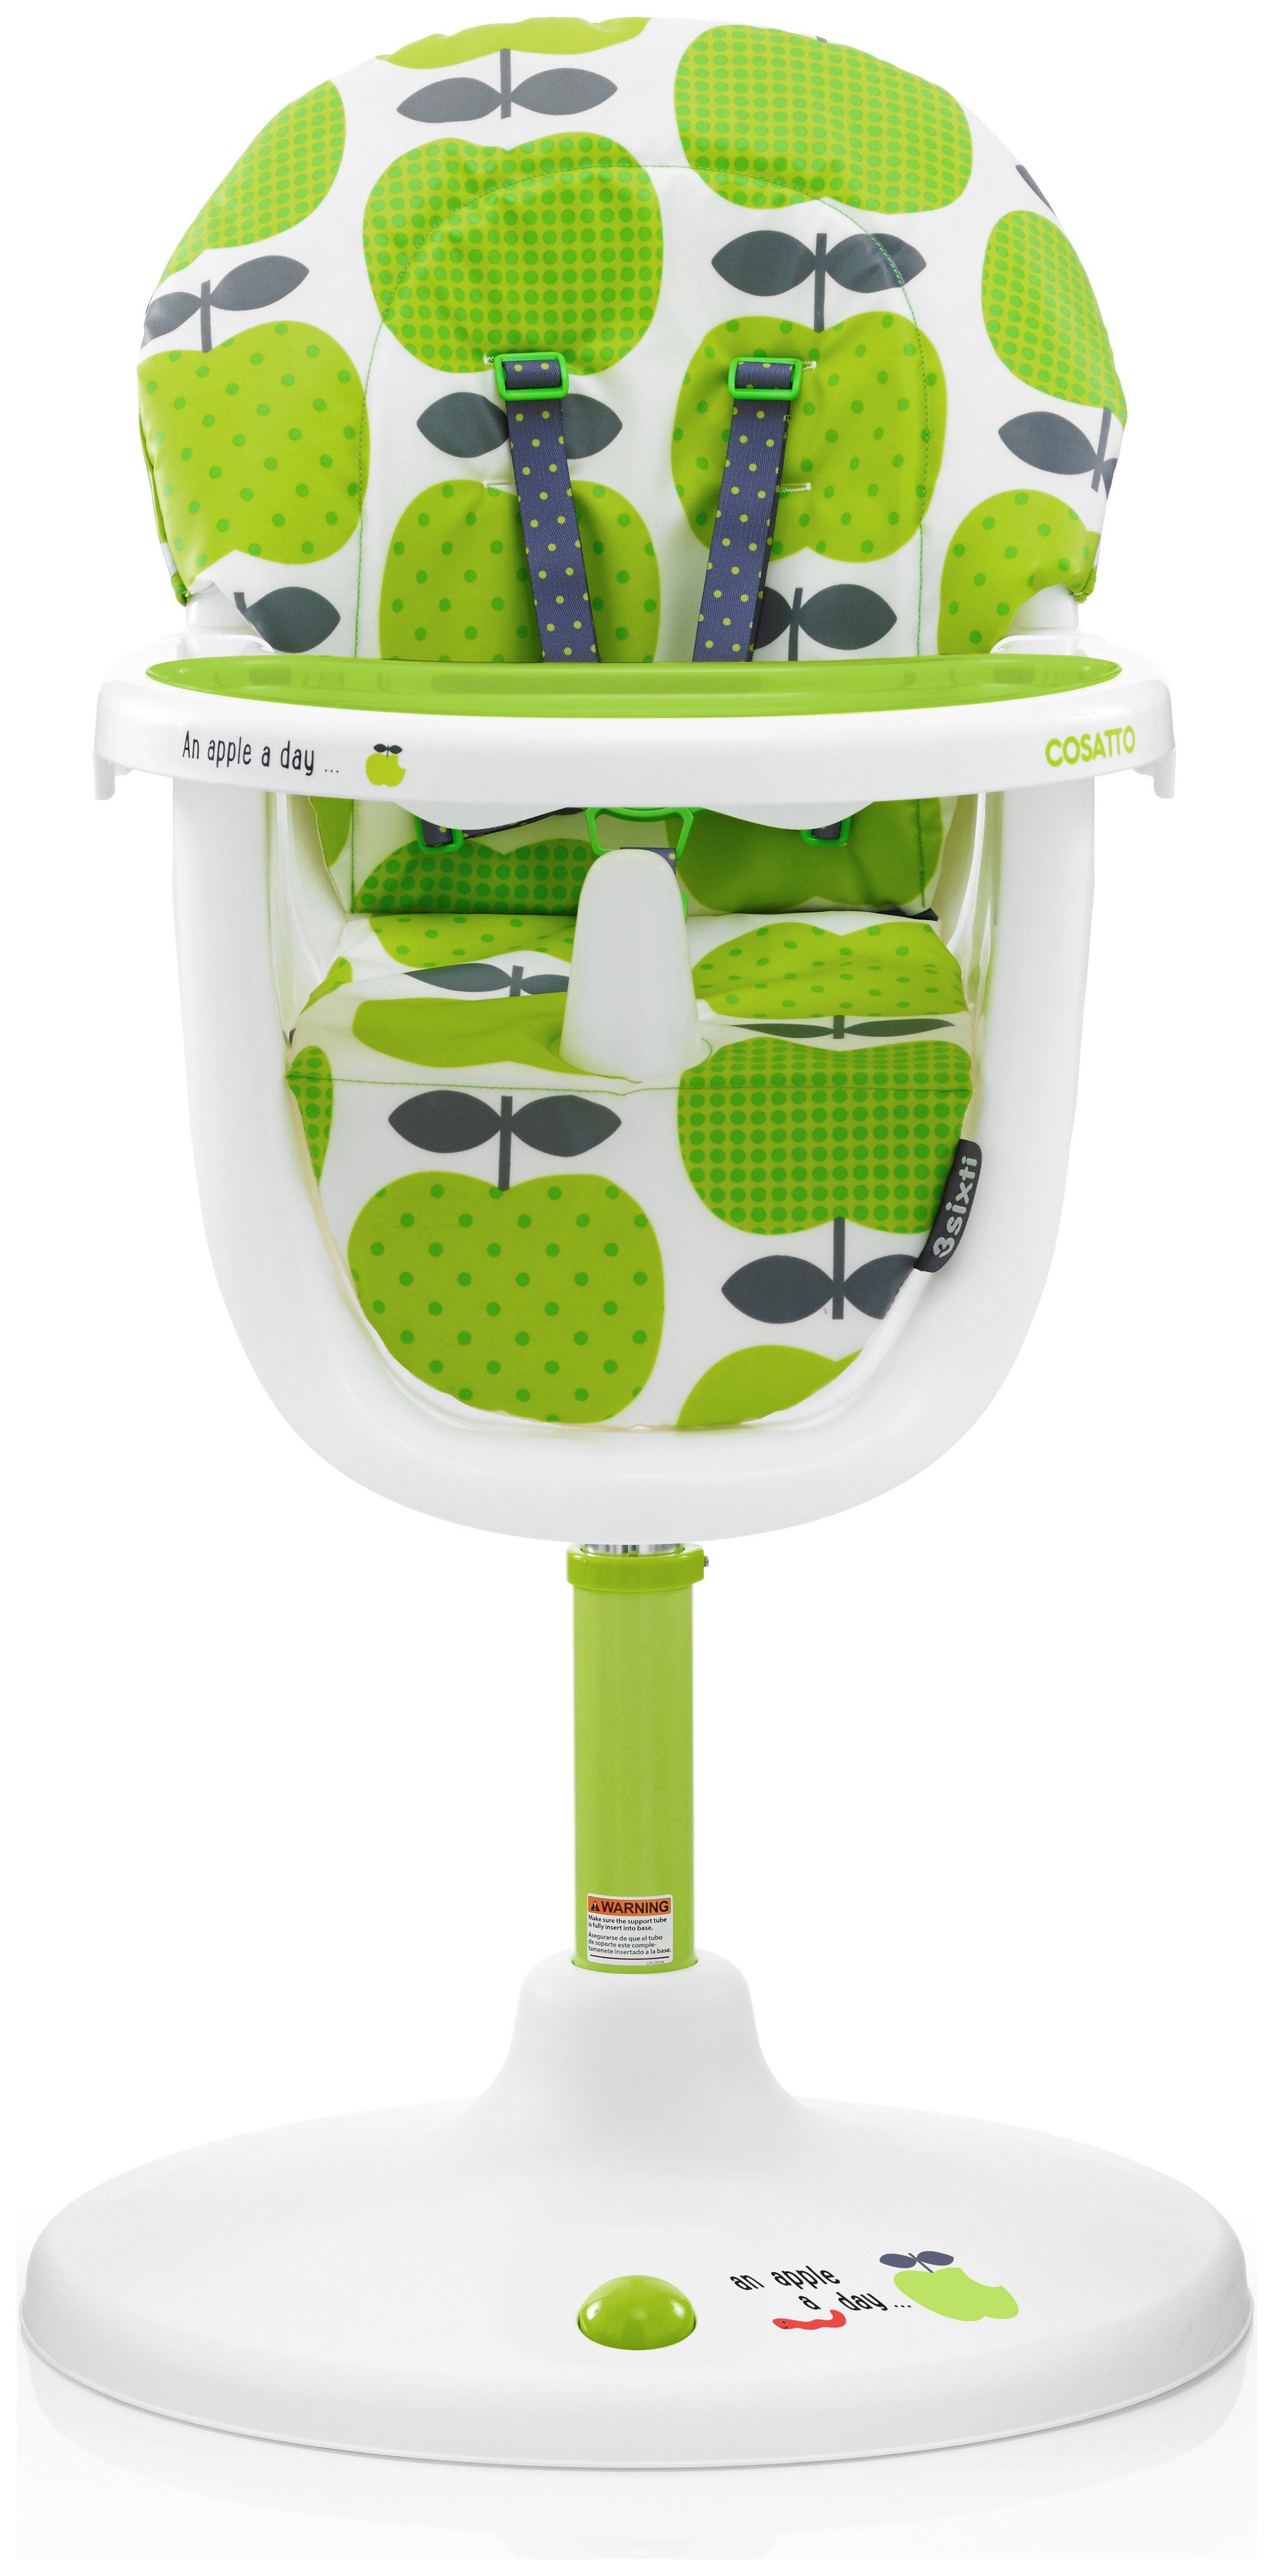 Image of Cosatto 3 Sixti Highchair - Hapi Apples 2.